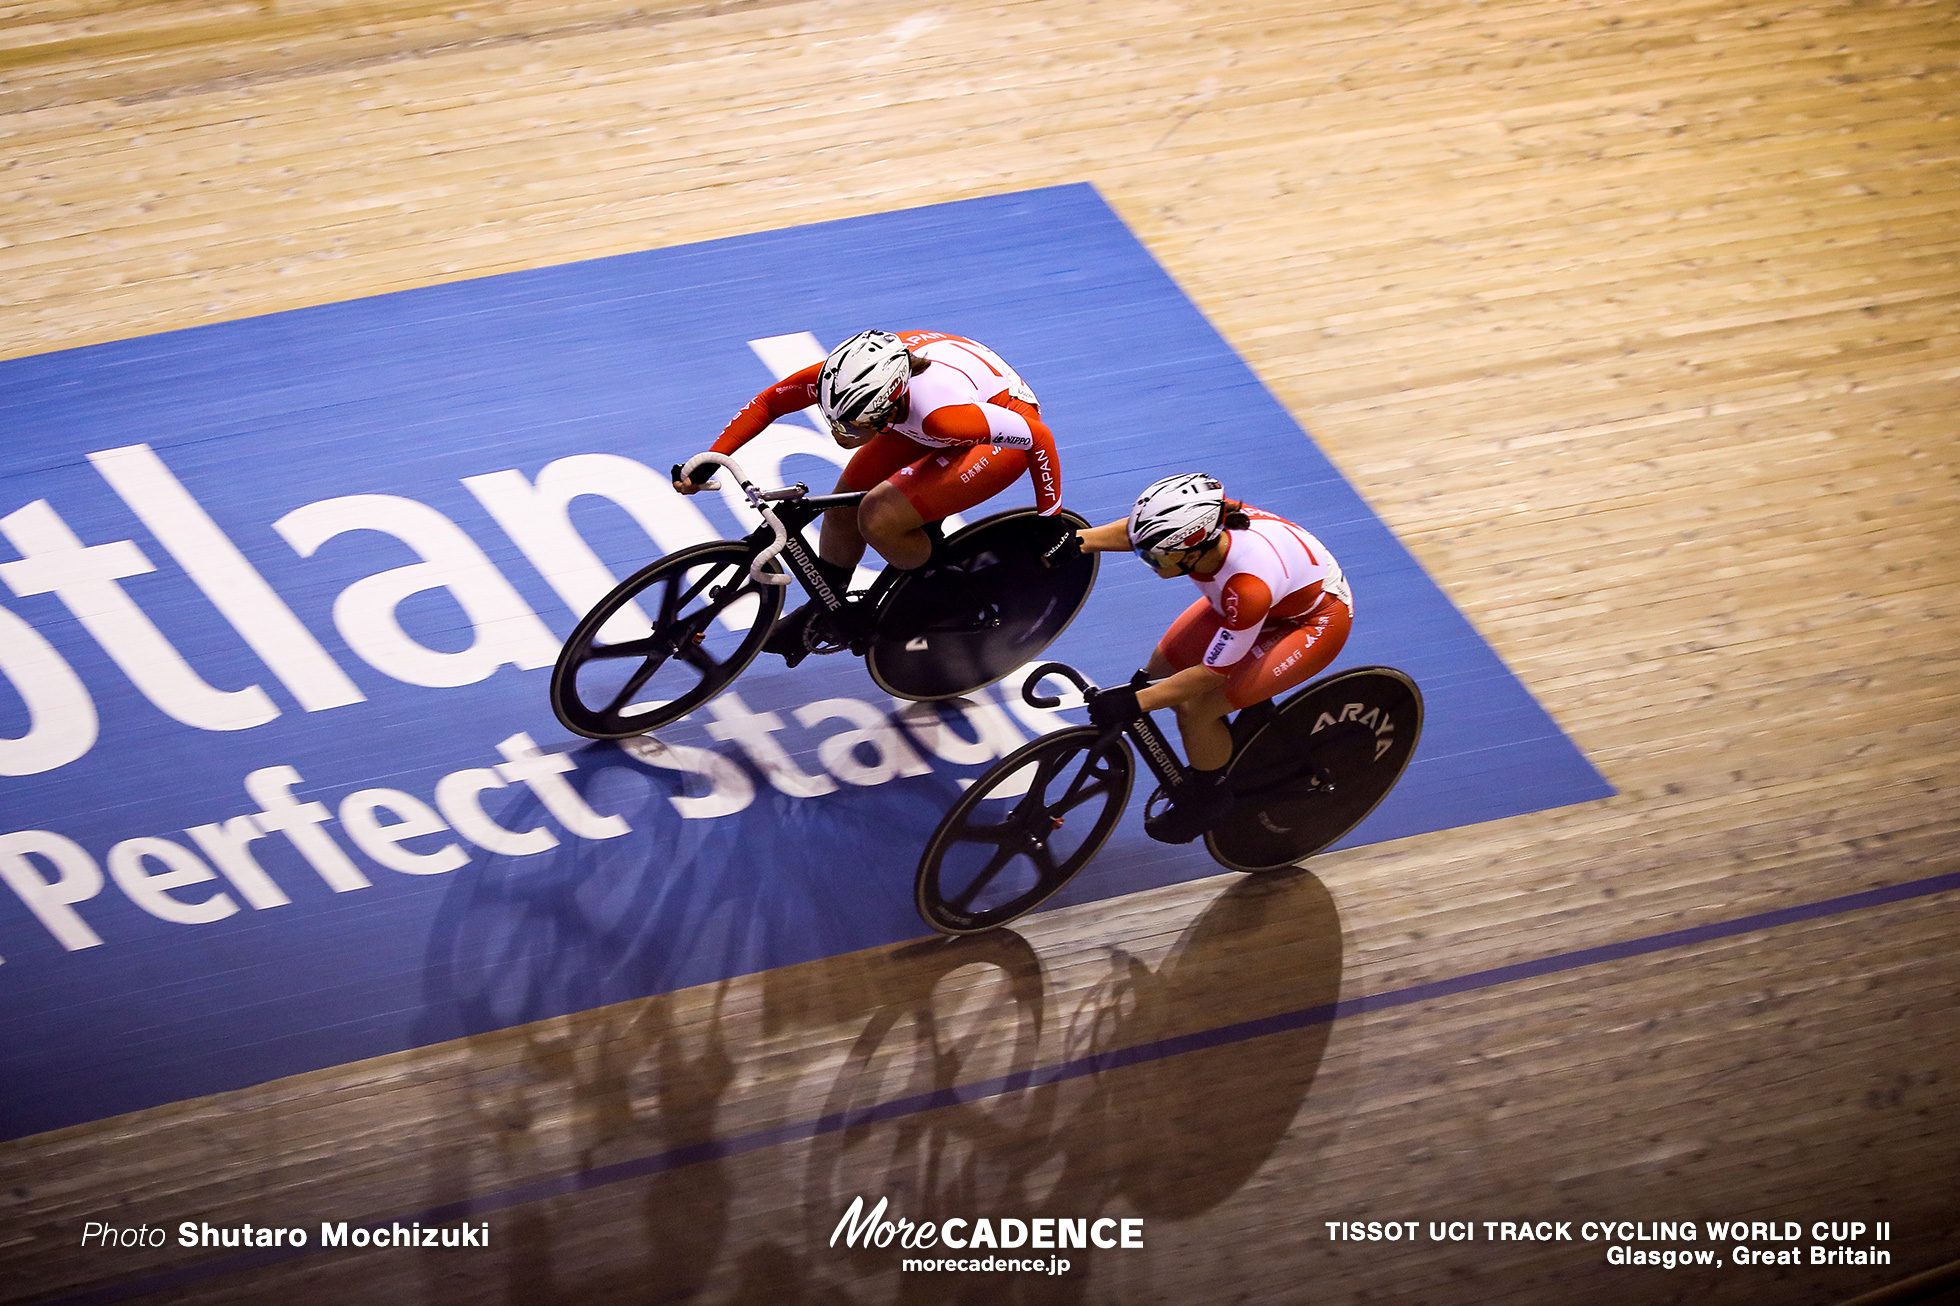 Women's Madison / TISSOT UCI TRACK CYCLING WORLD CUP II, Glasgow, Great Britain